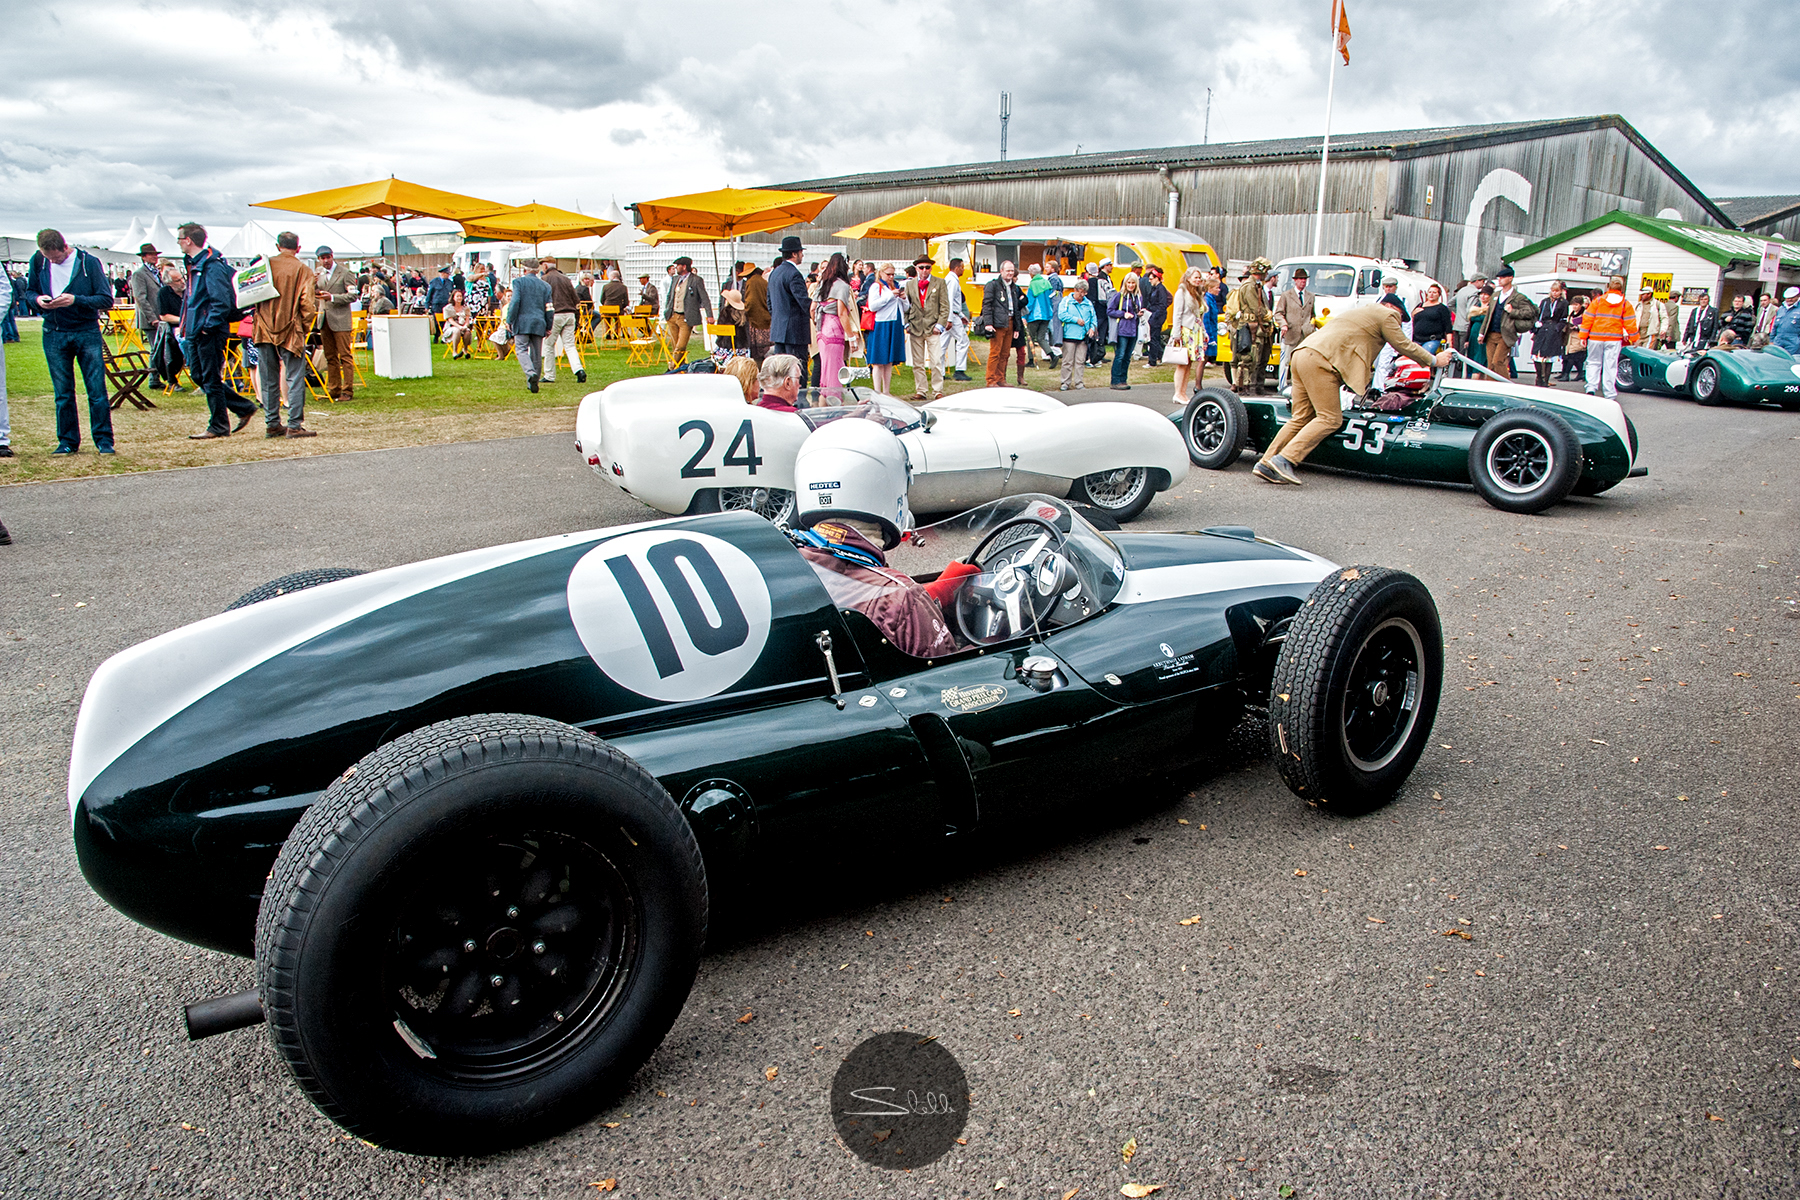 Stella Scordellis Goodwood Revival 2015 20 Watermarked.jpg